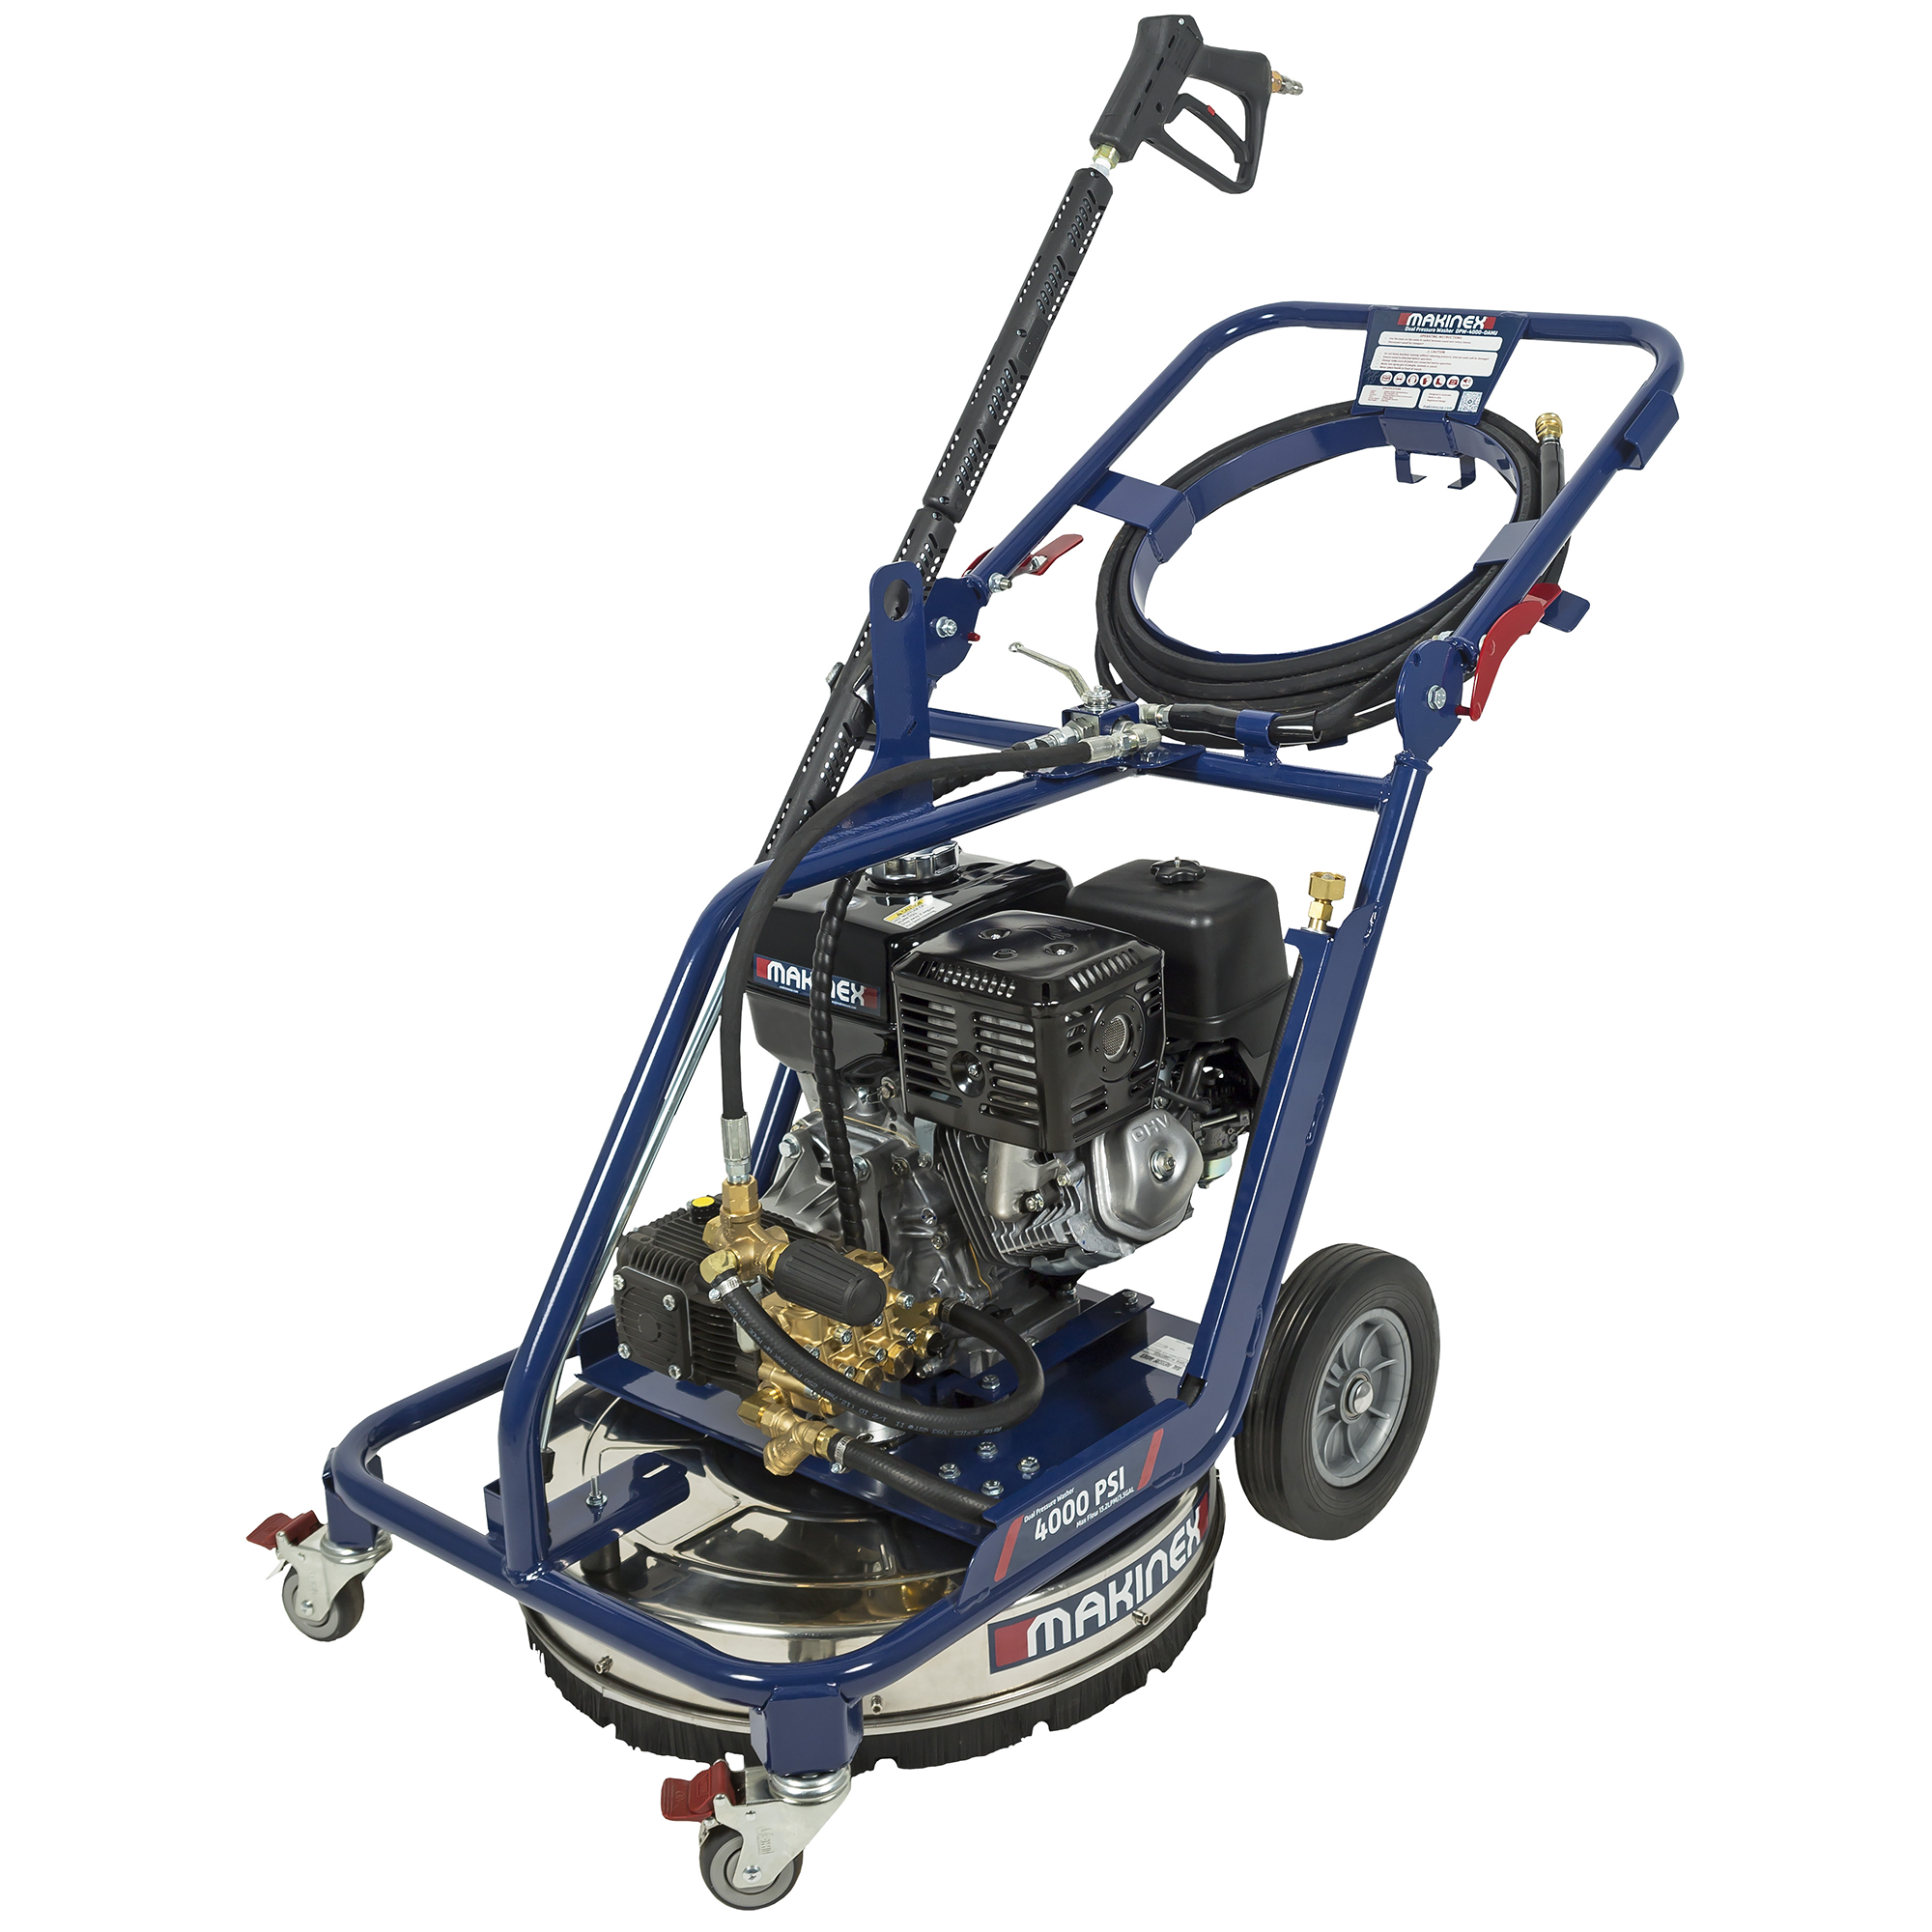 Makinex Dual Pressure Washer (4000 PSI)